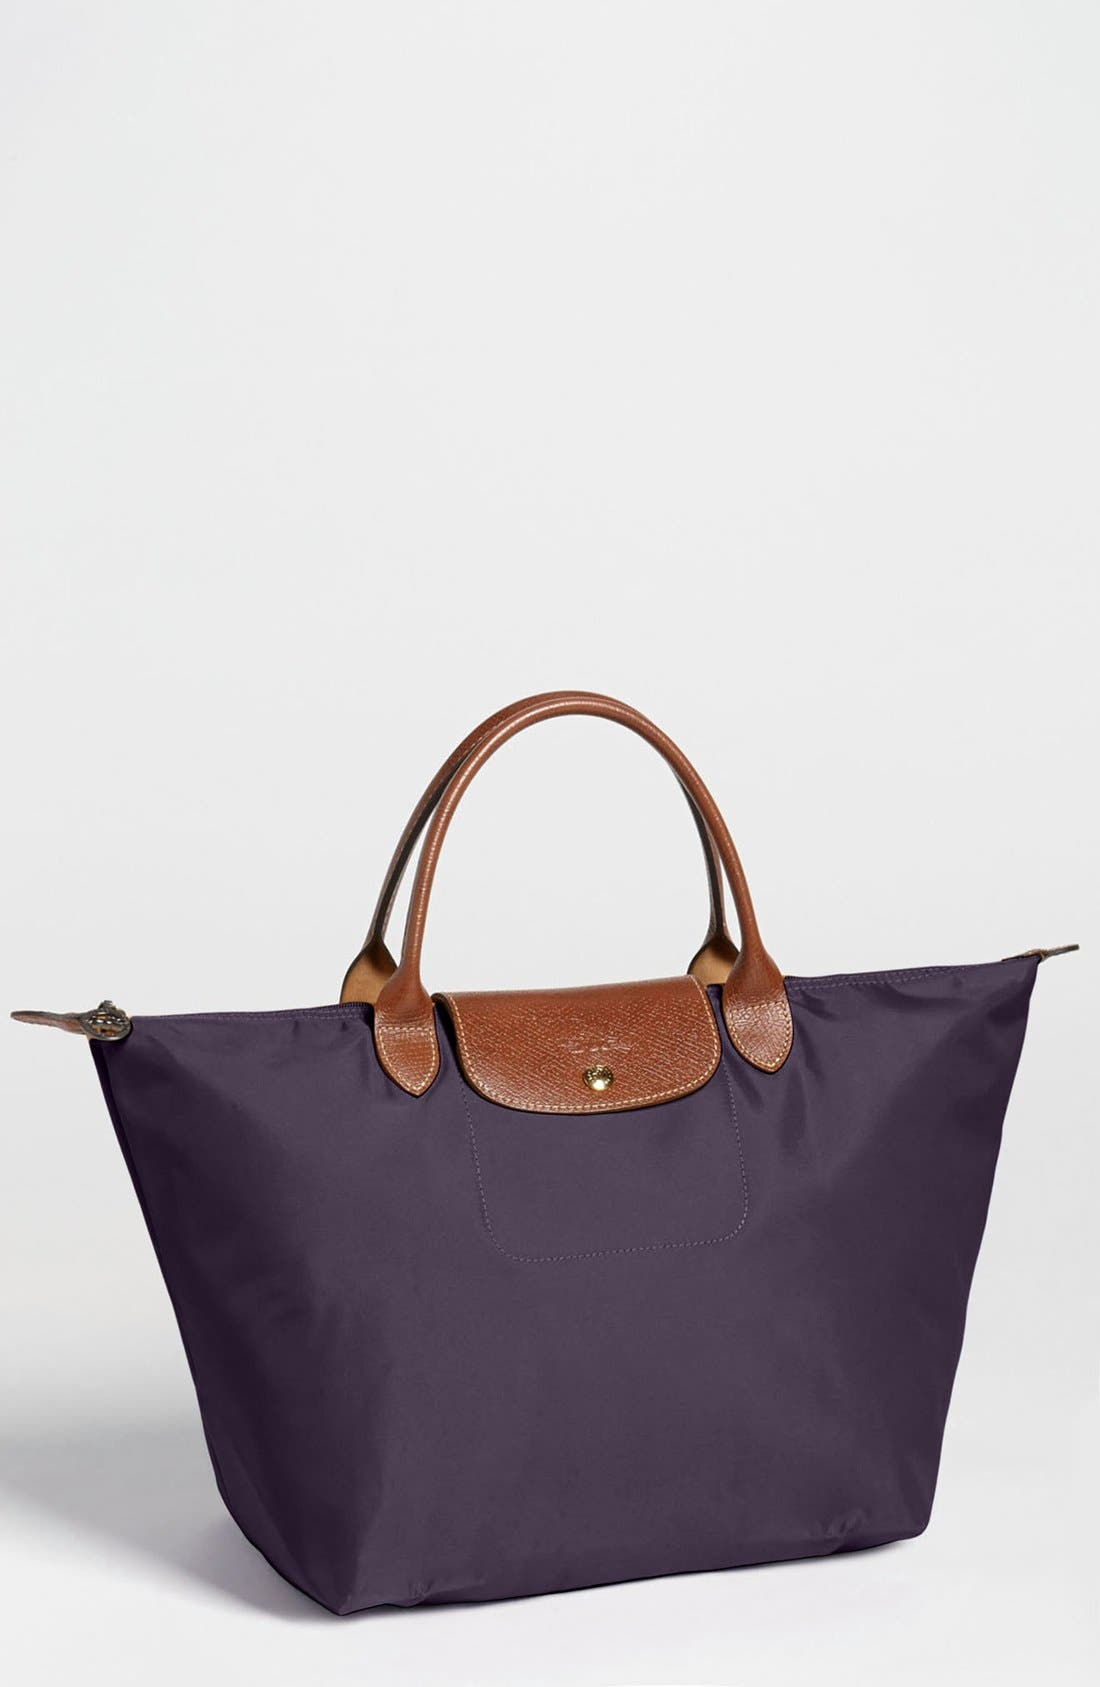 Alternate Image 1 Selected - Longchamp 'Medium Le Pliage' Nylon Tote